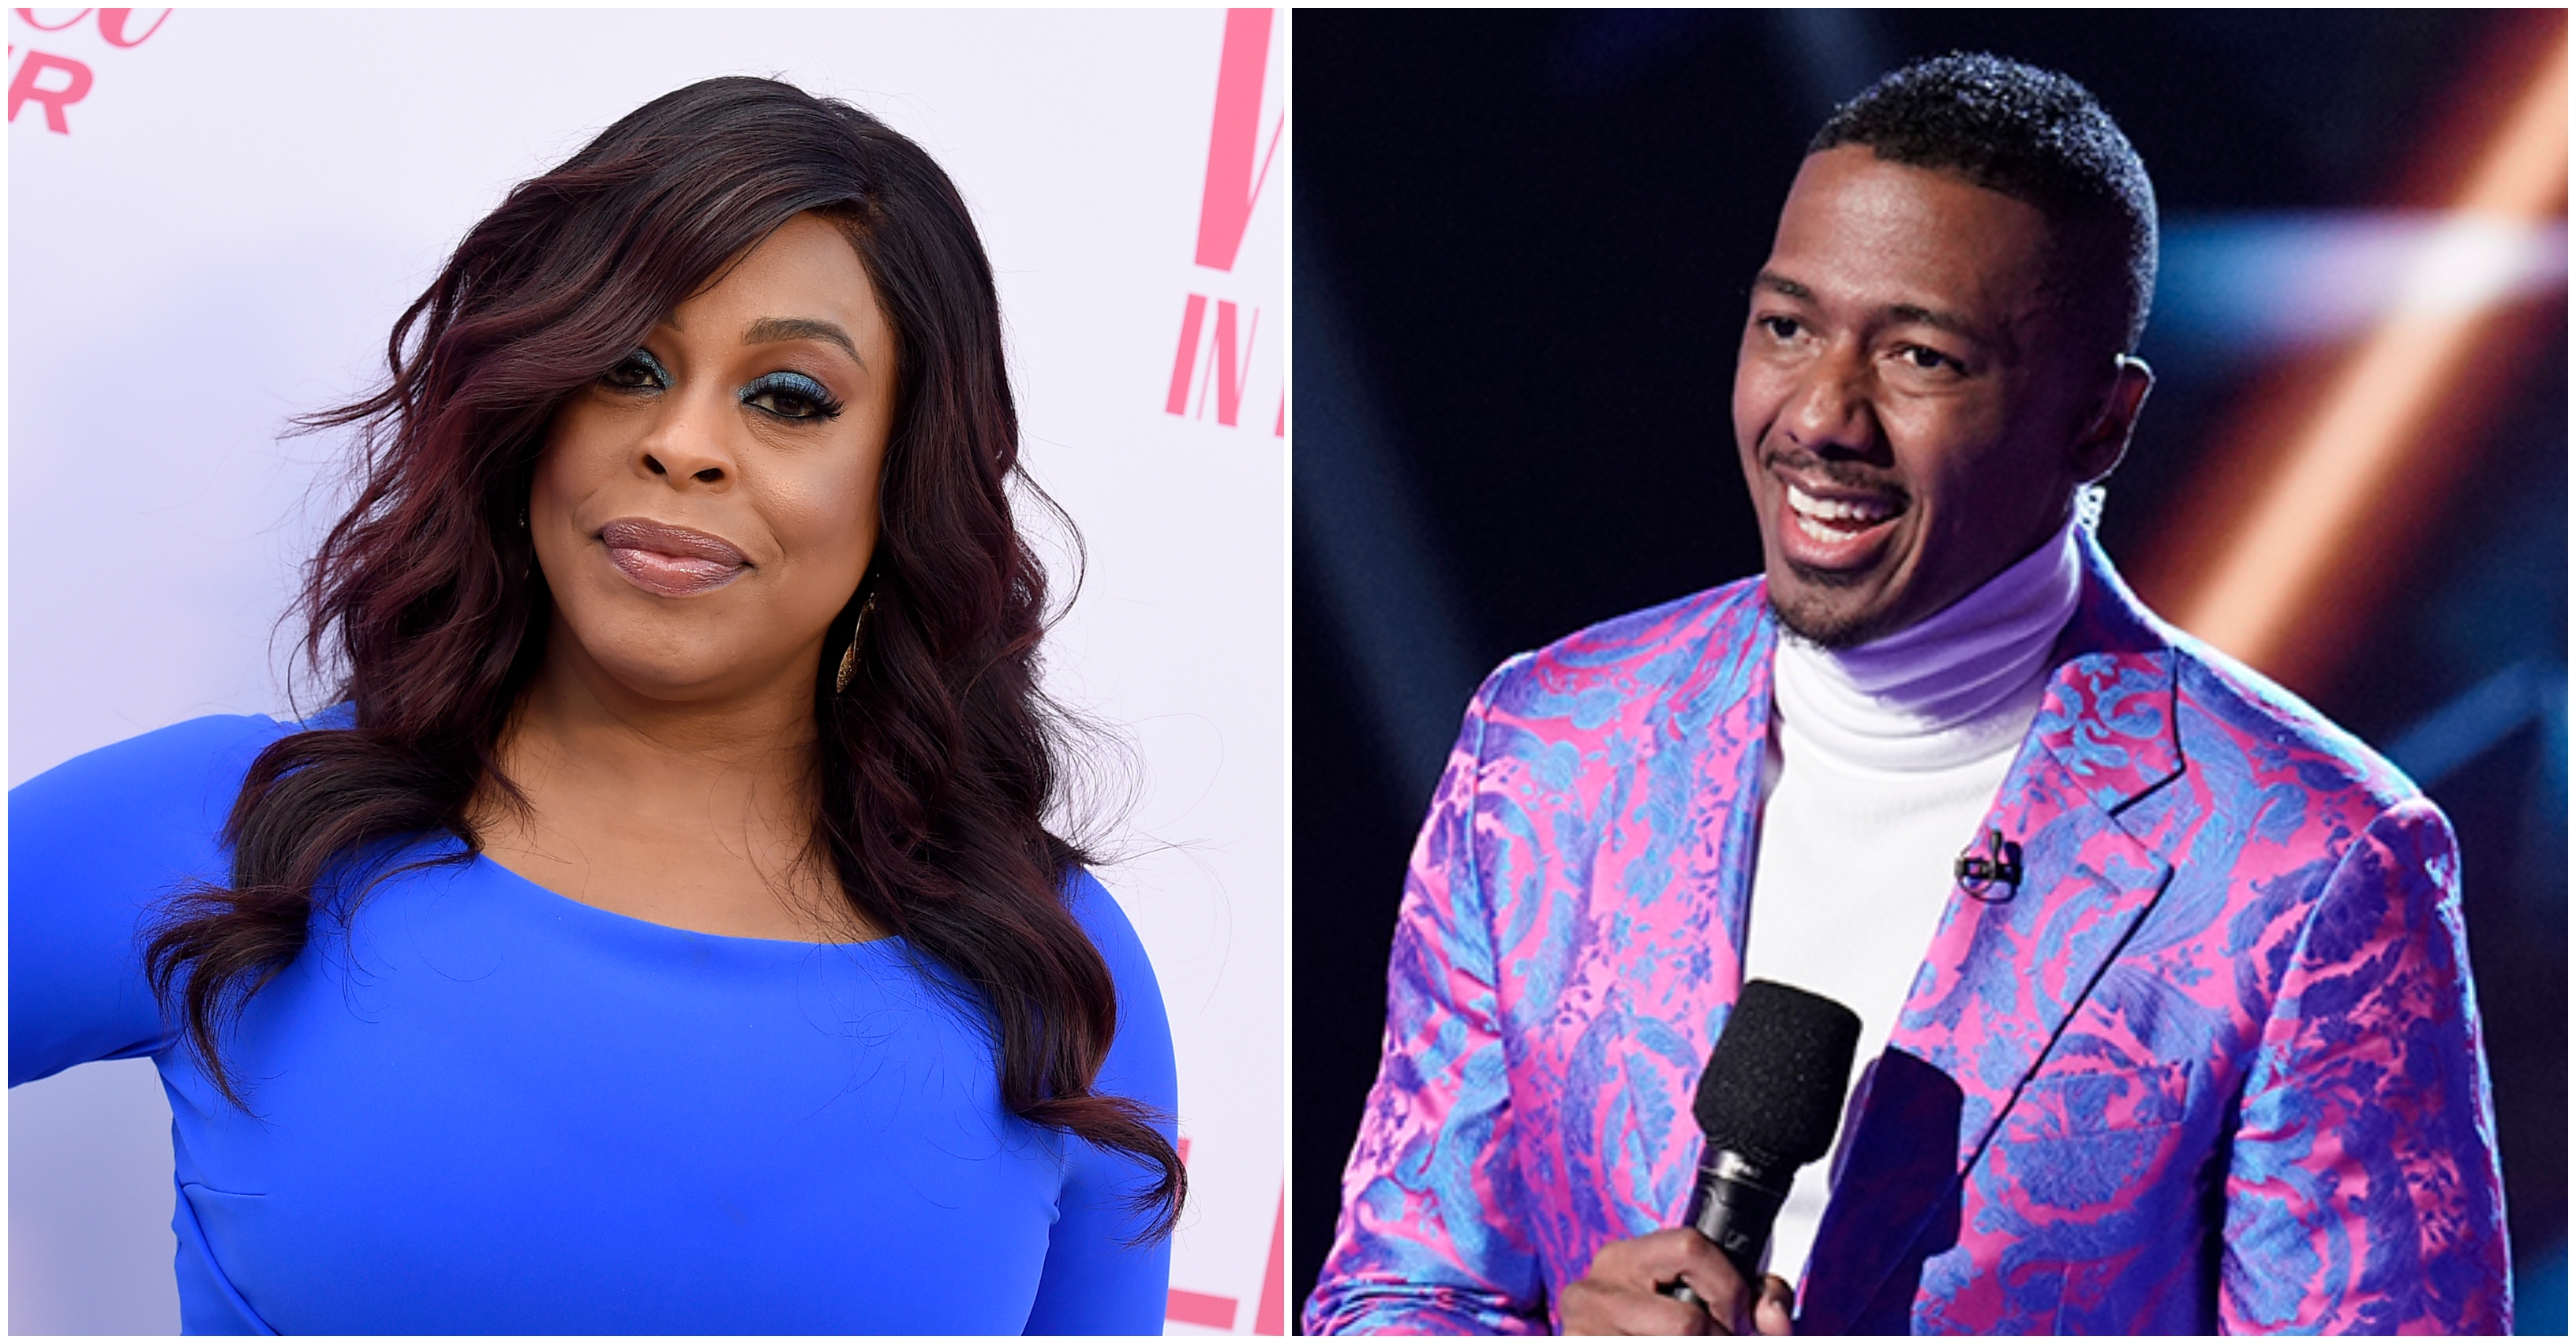 The Masked Singer Host Nick Cannon Has Covid Niecy Nash To Fill In Variety